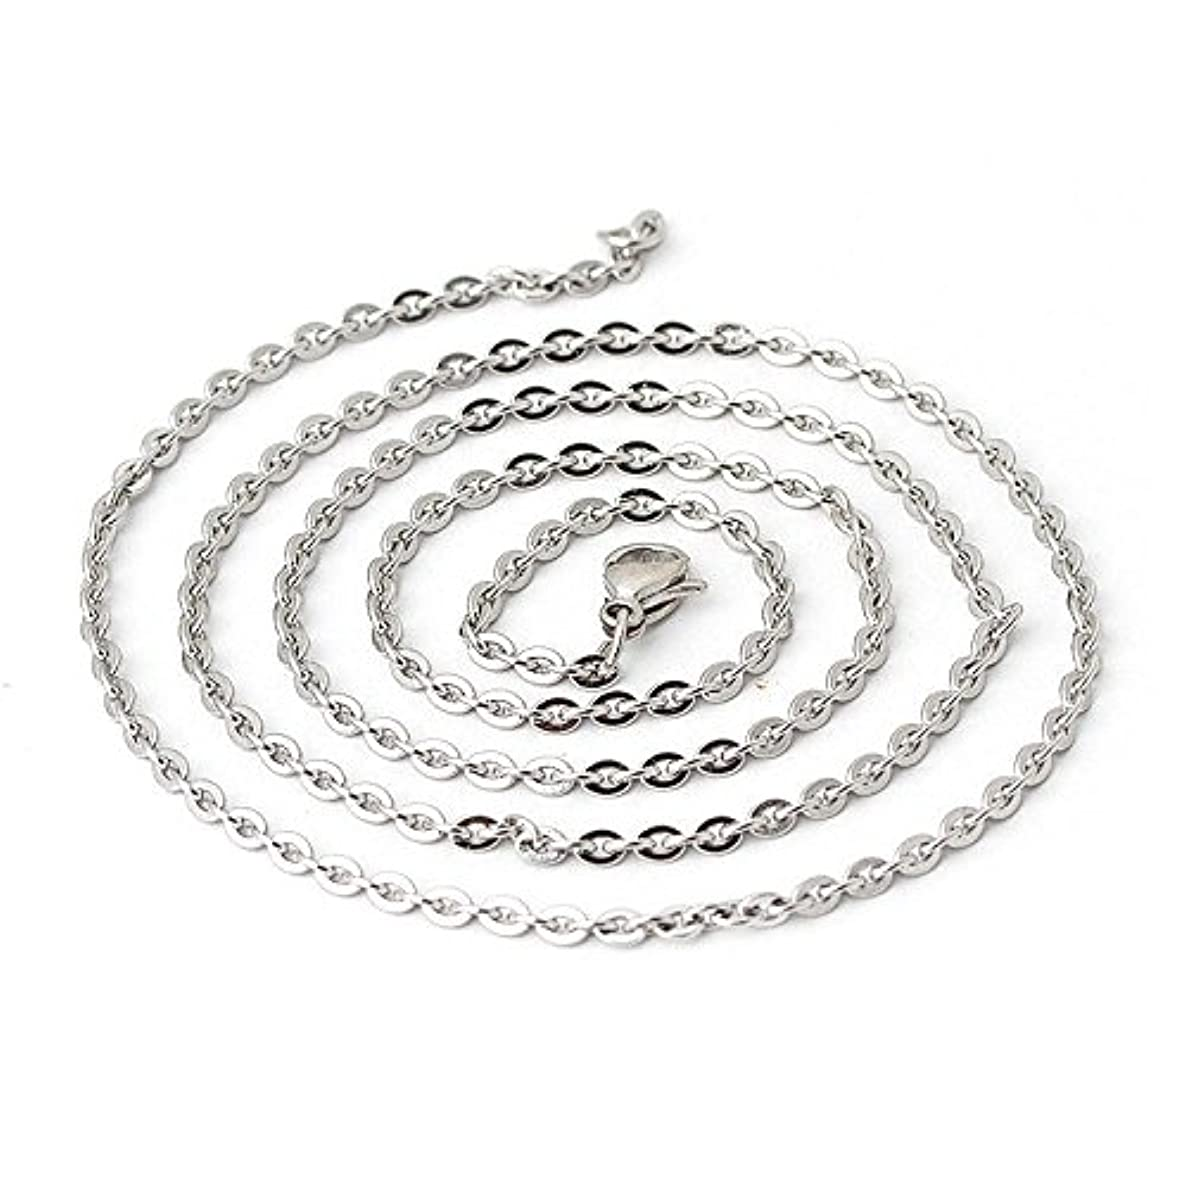 Wholesale 12 PCS Genuine Stainless Steel Fine Cable Chain Necklace Chains Bulk for Jewelry Making 18-30 Inches (30 Inch(2MM))